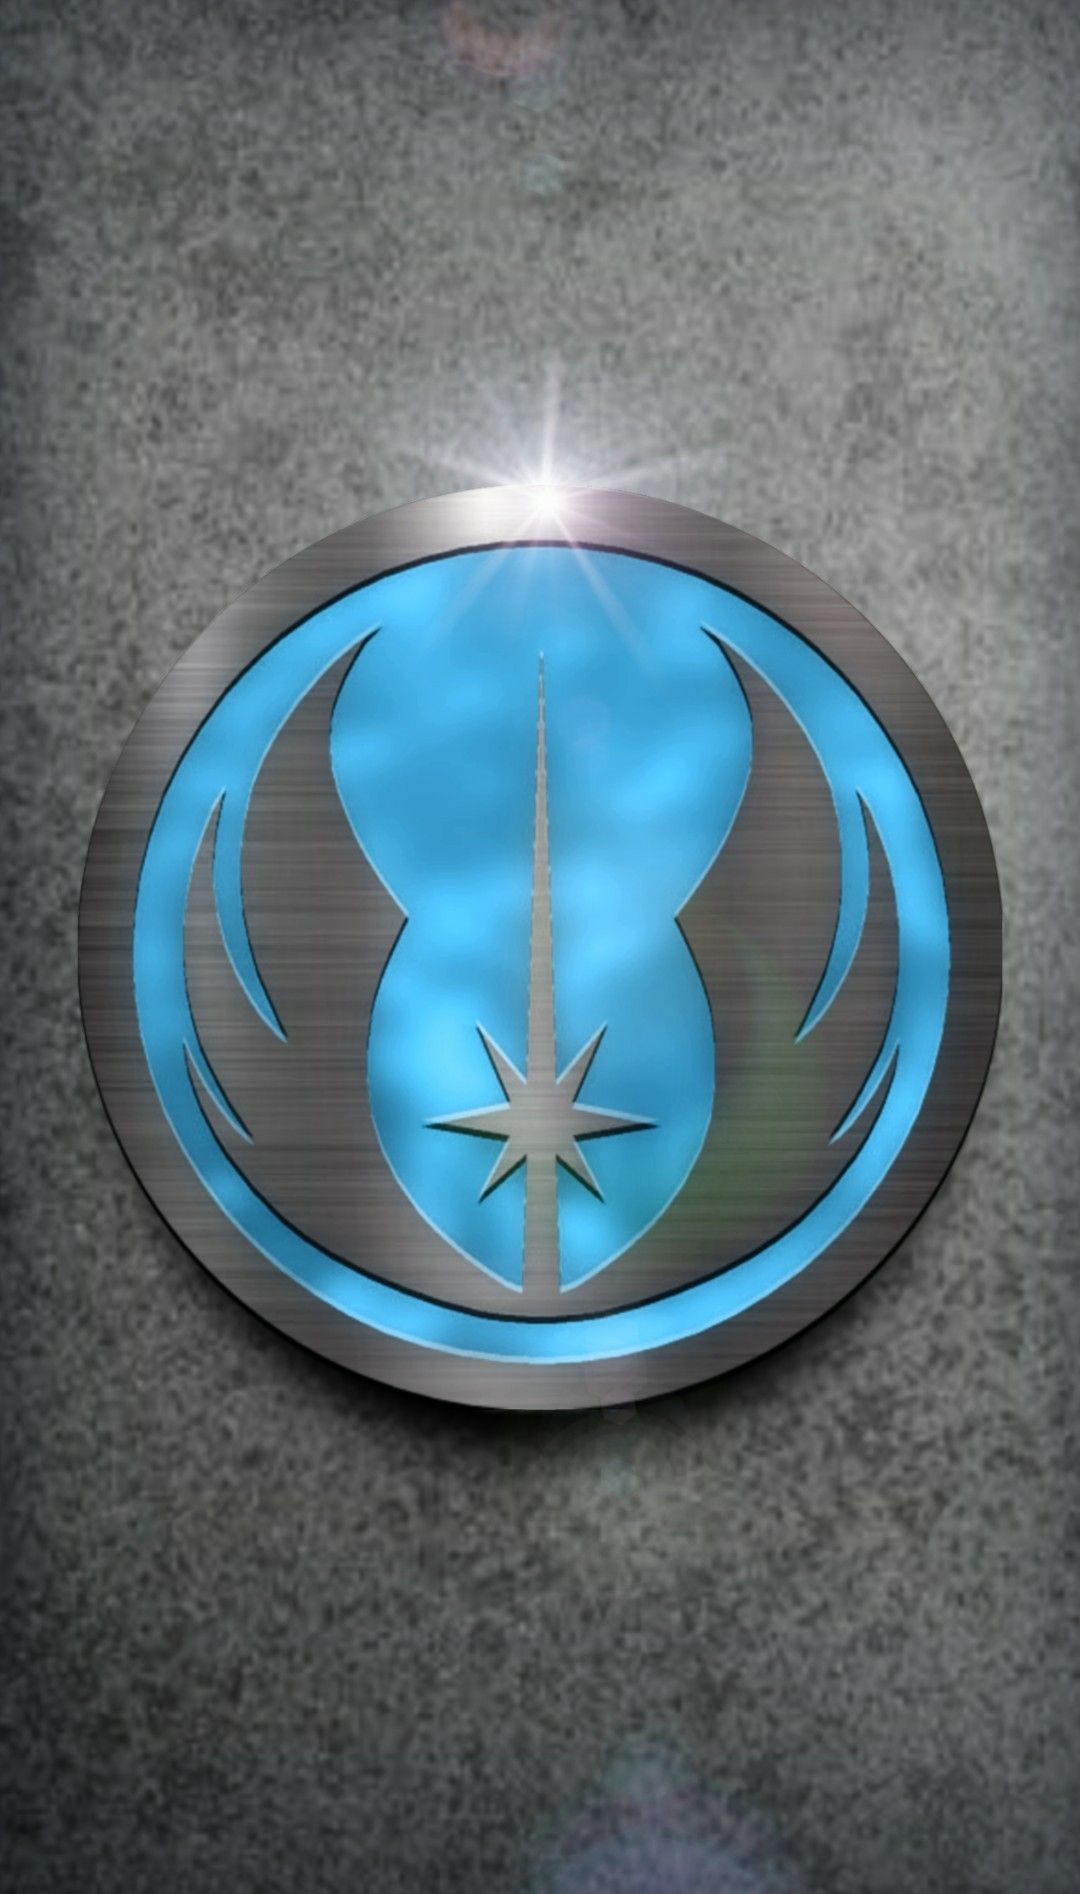 Star Wars Jedi Order Logo Wallpaper Star Wars Images Star Wars Background Star Wars Symbols